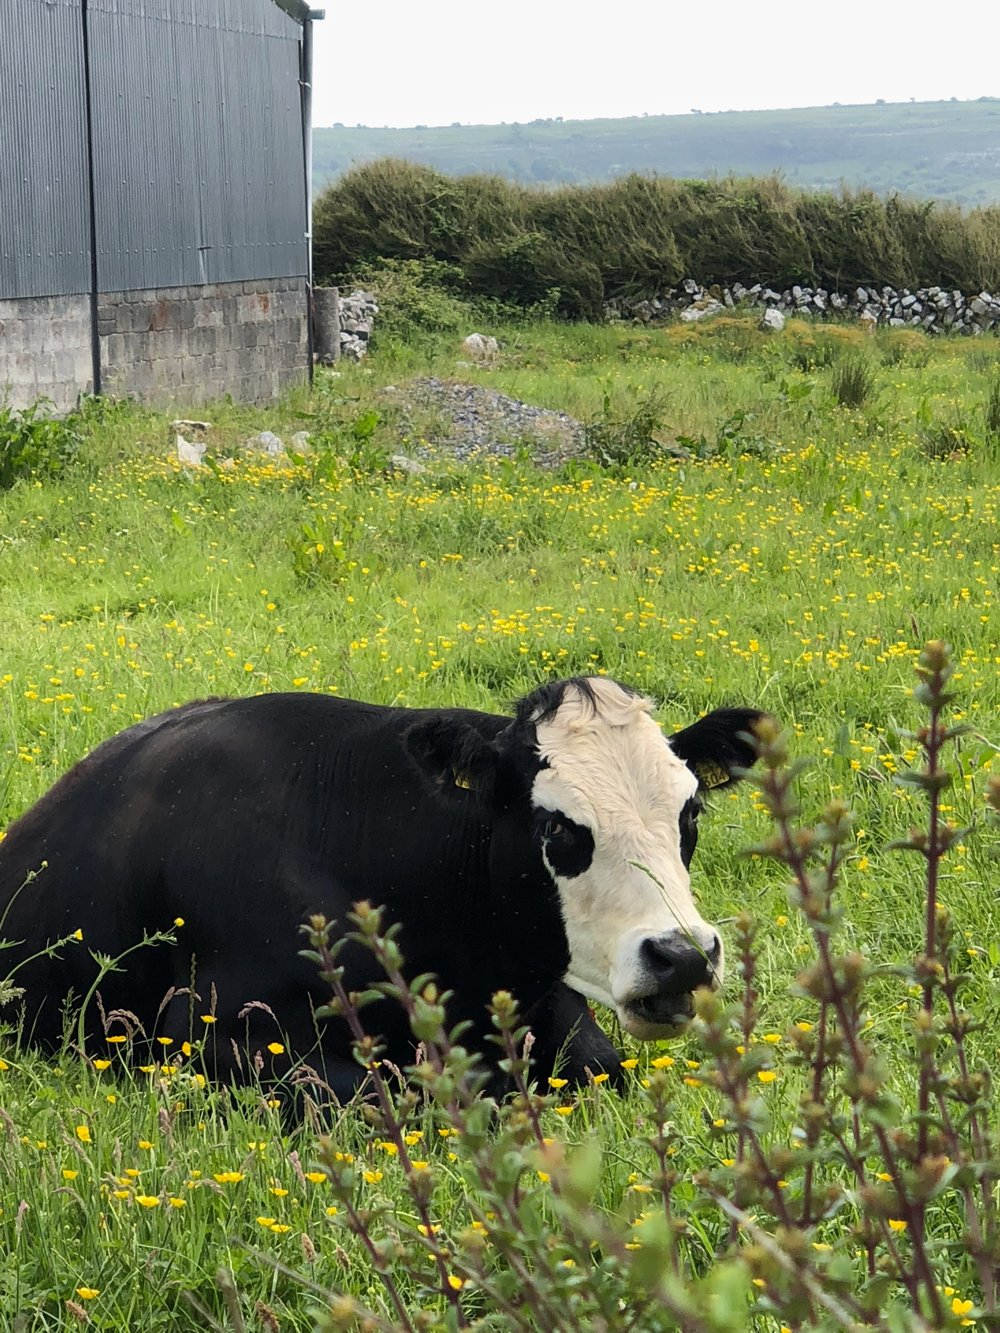 sweet_cow Ireland2.JPG